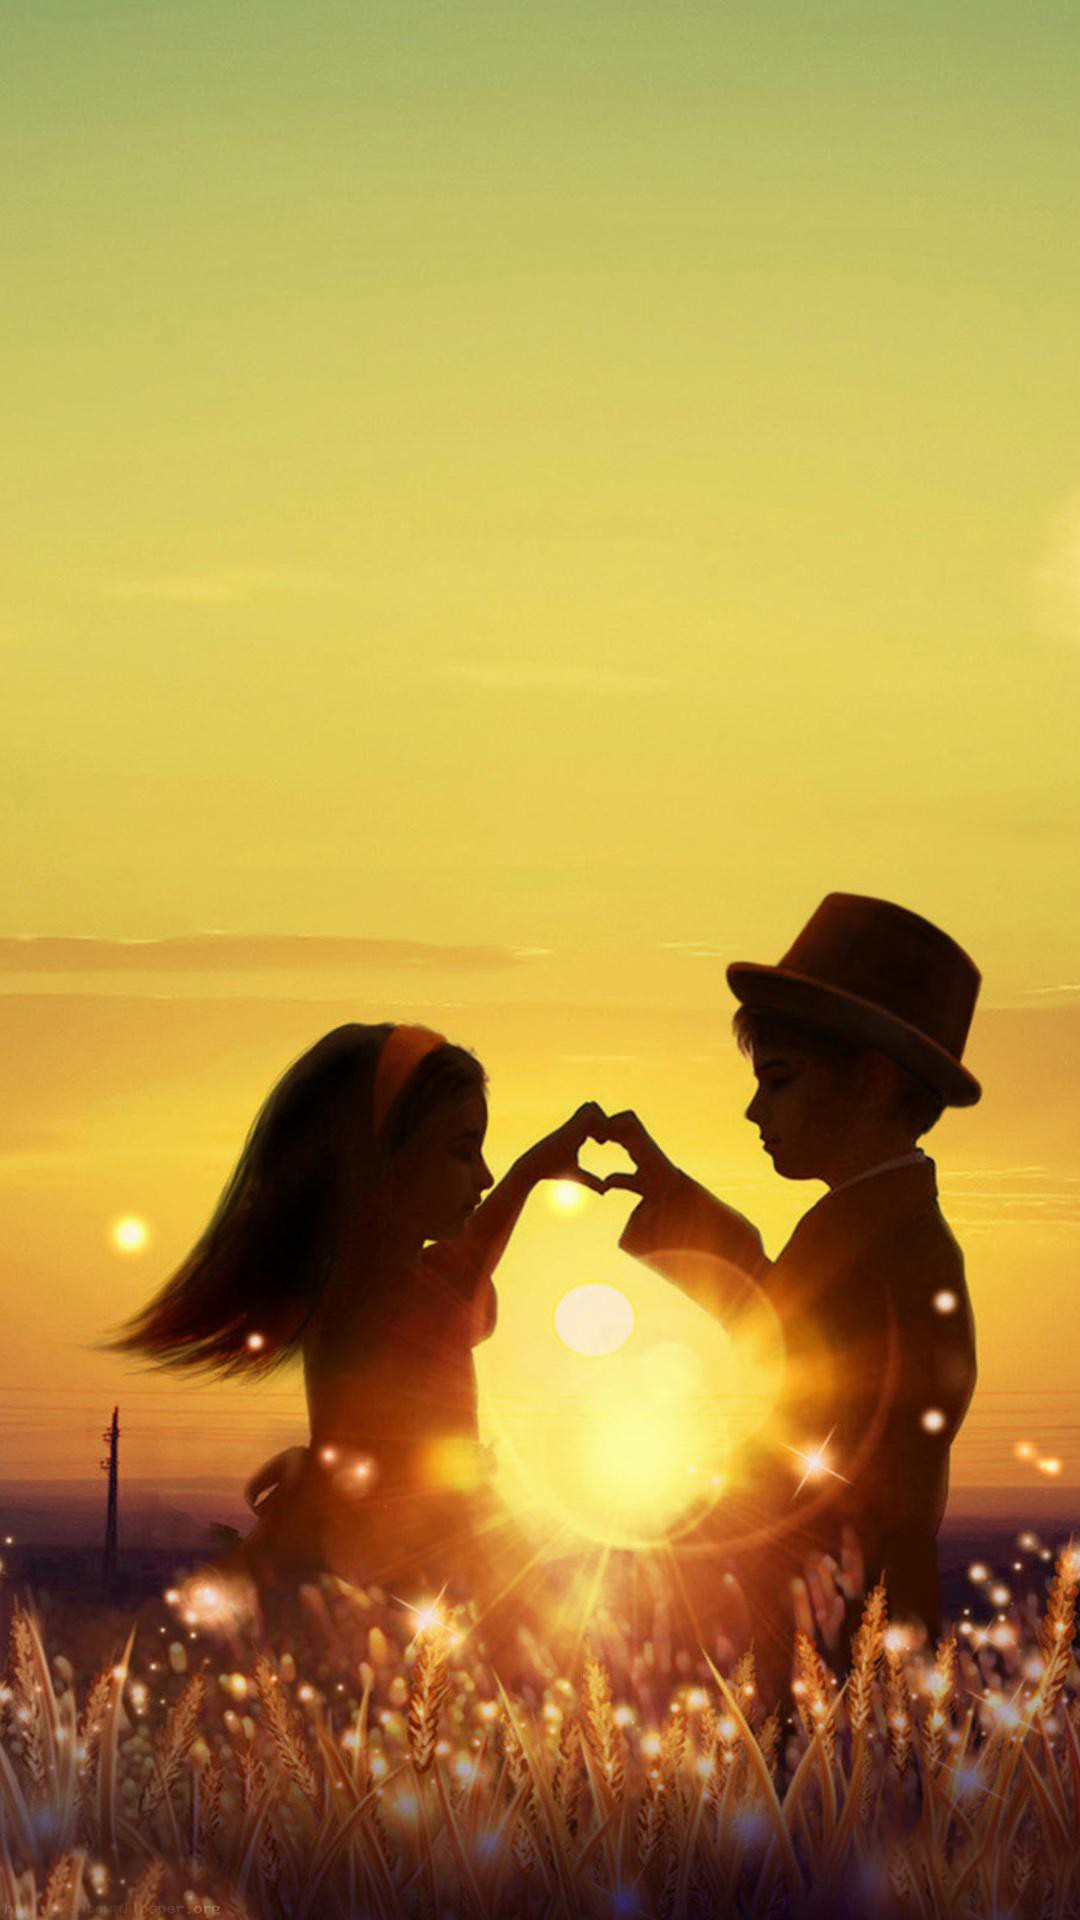 Download cute love hd wallpapers for mobile gallery - 4k love wallpaper for mobile ...